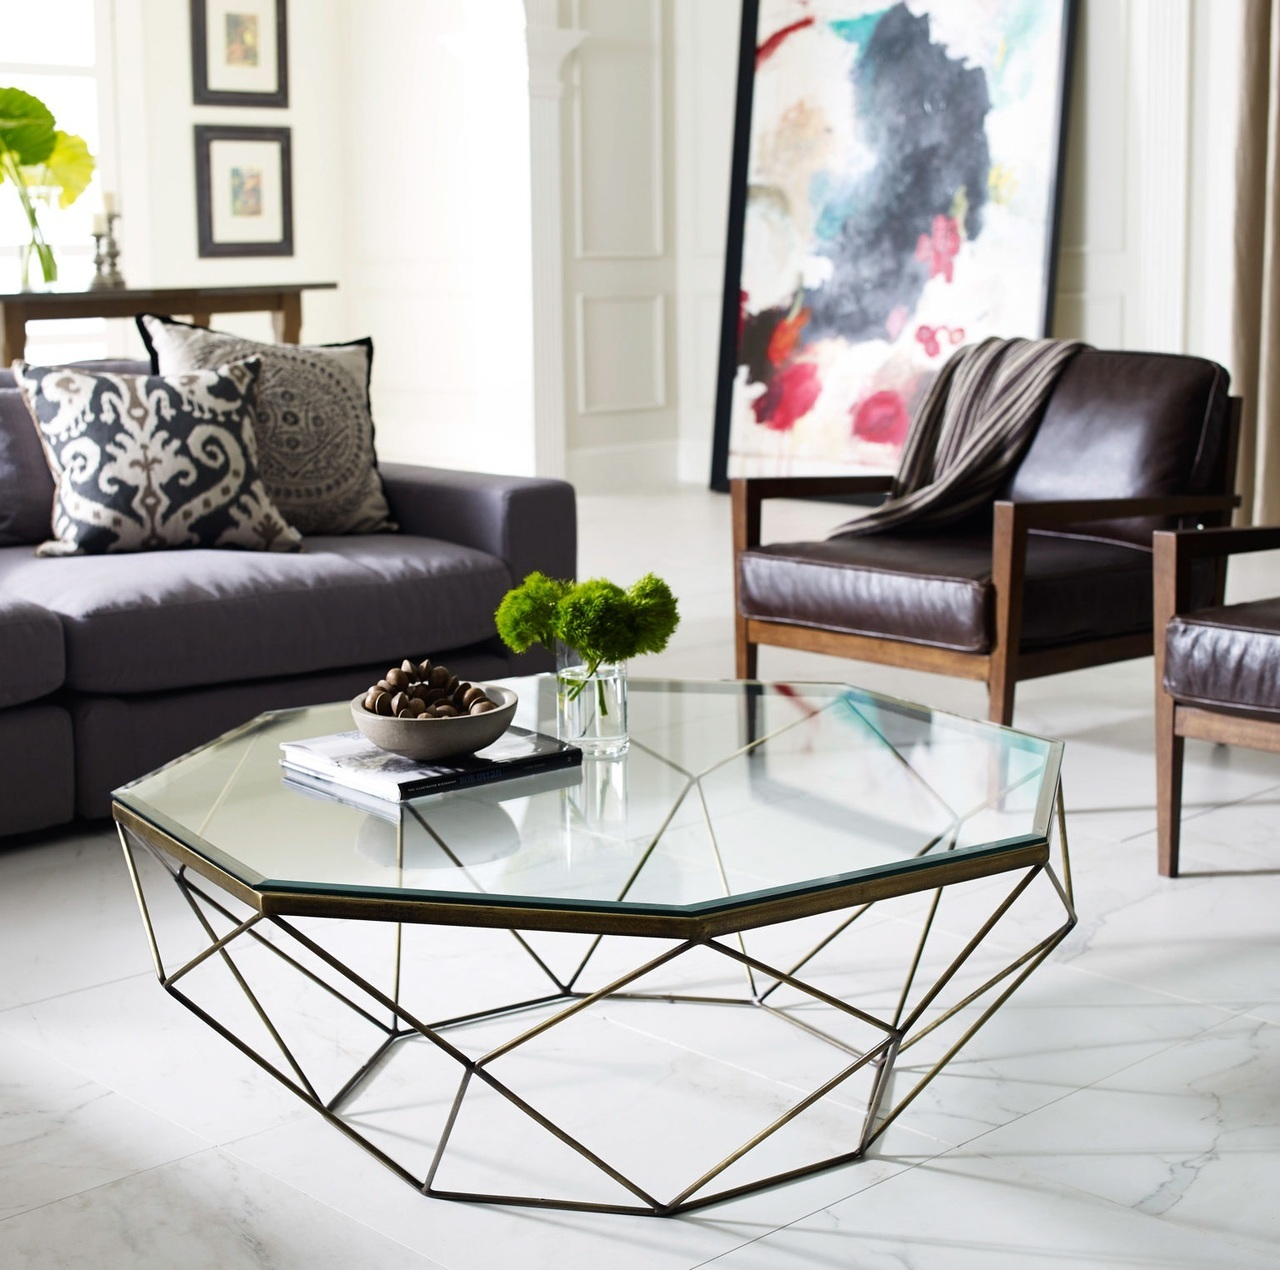 Glass Tables Living Room 30 Glass Coffee Tables That Bring Transparency To Your